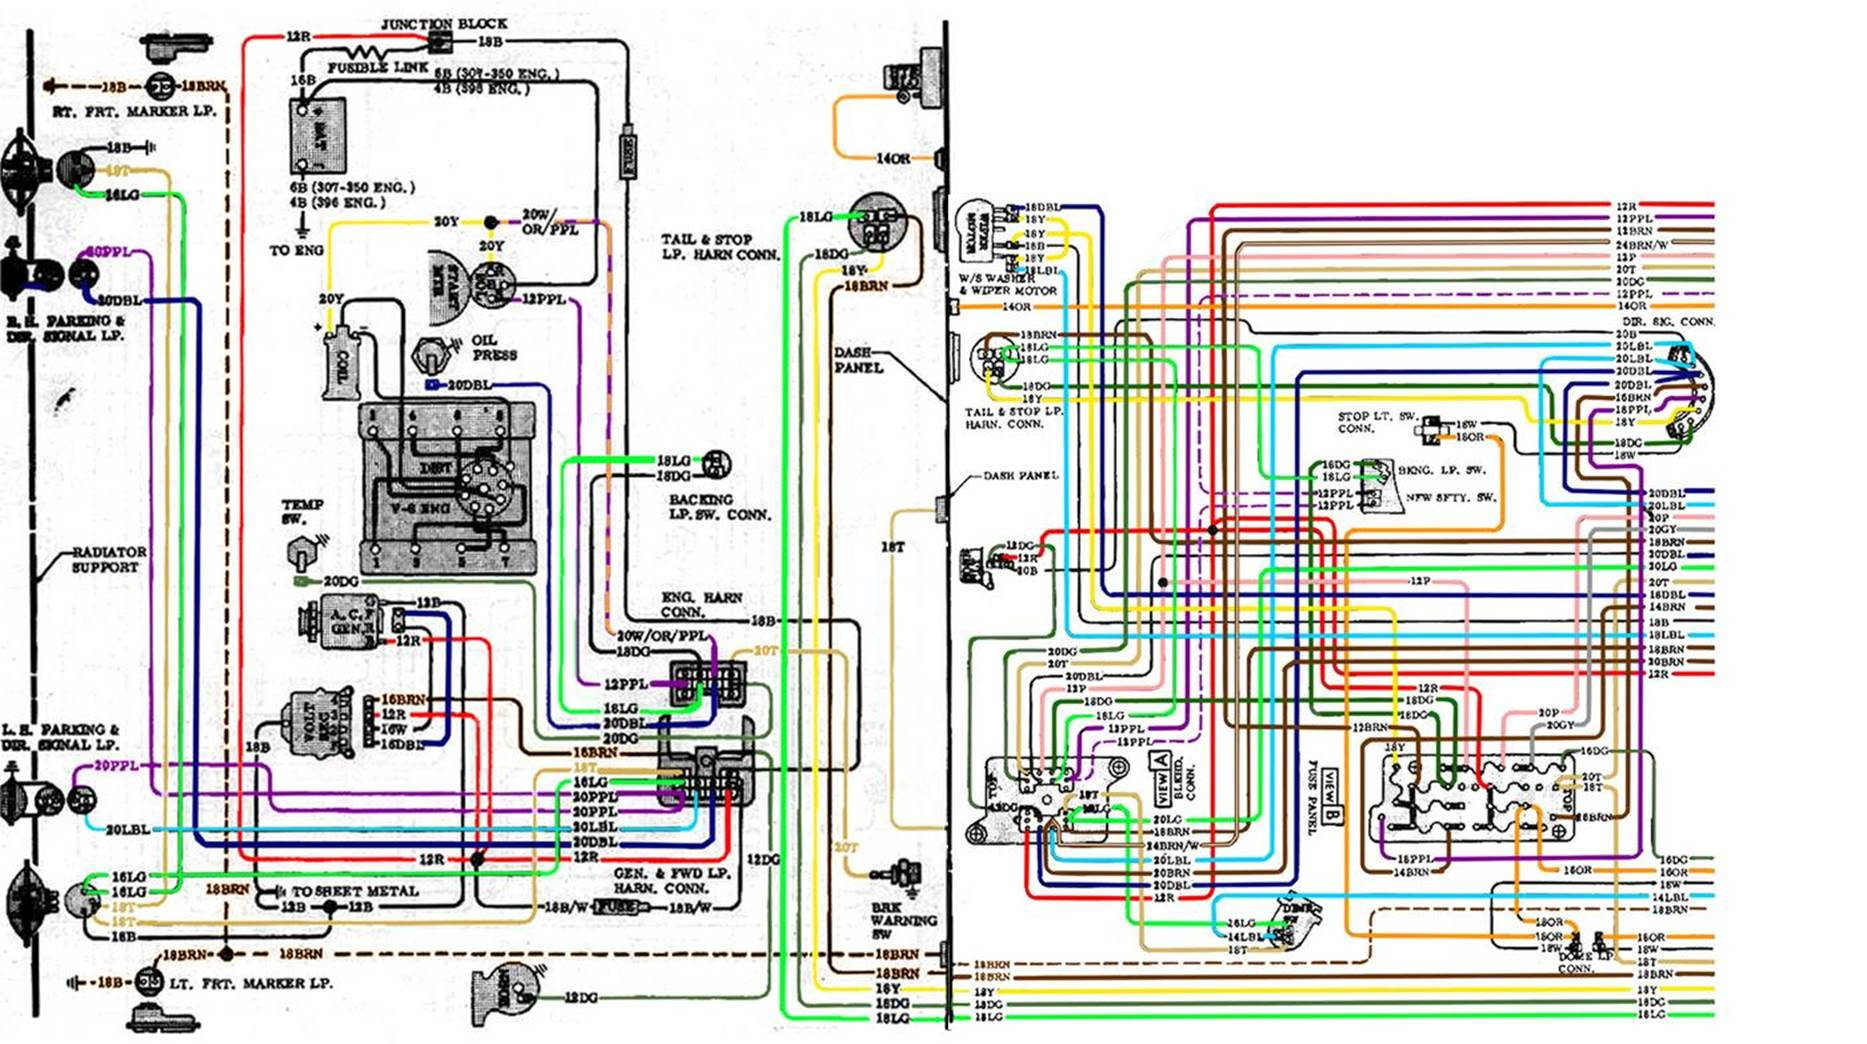 image002 72 c10 wiring diagram chevy truck wiring diagram \u2022 wiring diagrams 1972 chevy nova wiring diagram at eliteediting.co